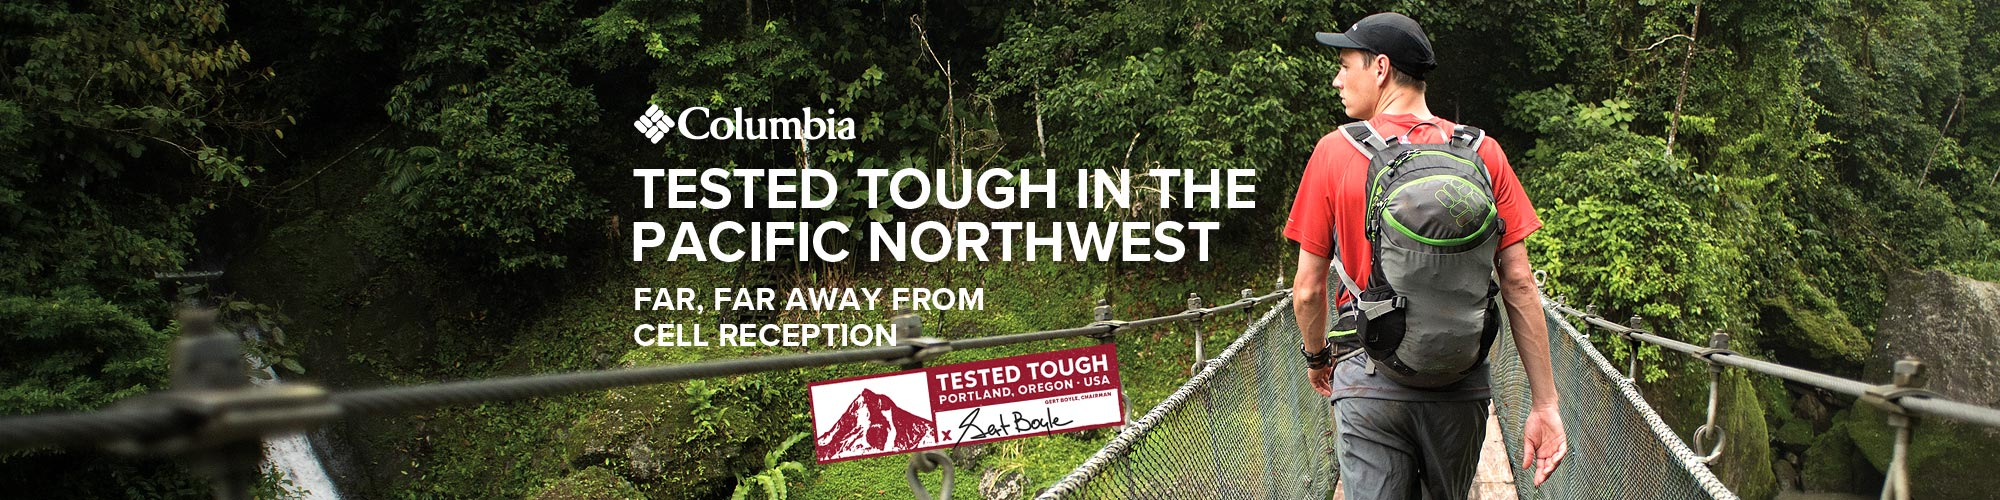 Tested tough in the Pacific Northwest. Far, far away from cell reception.